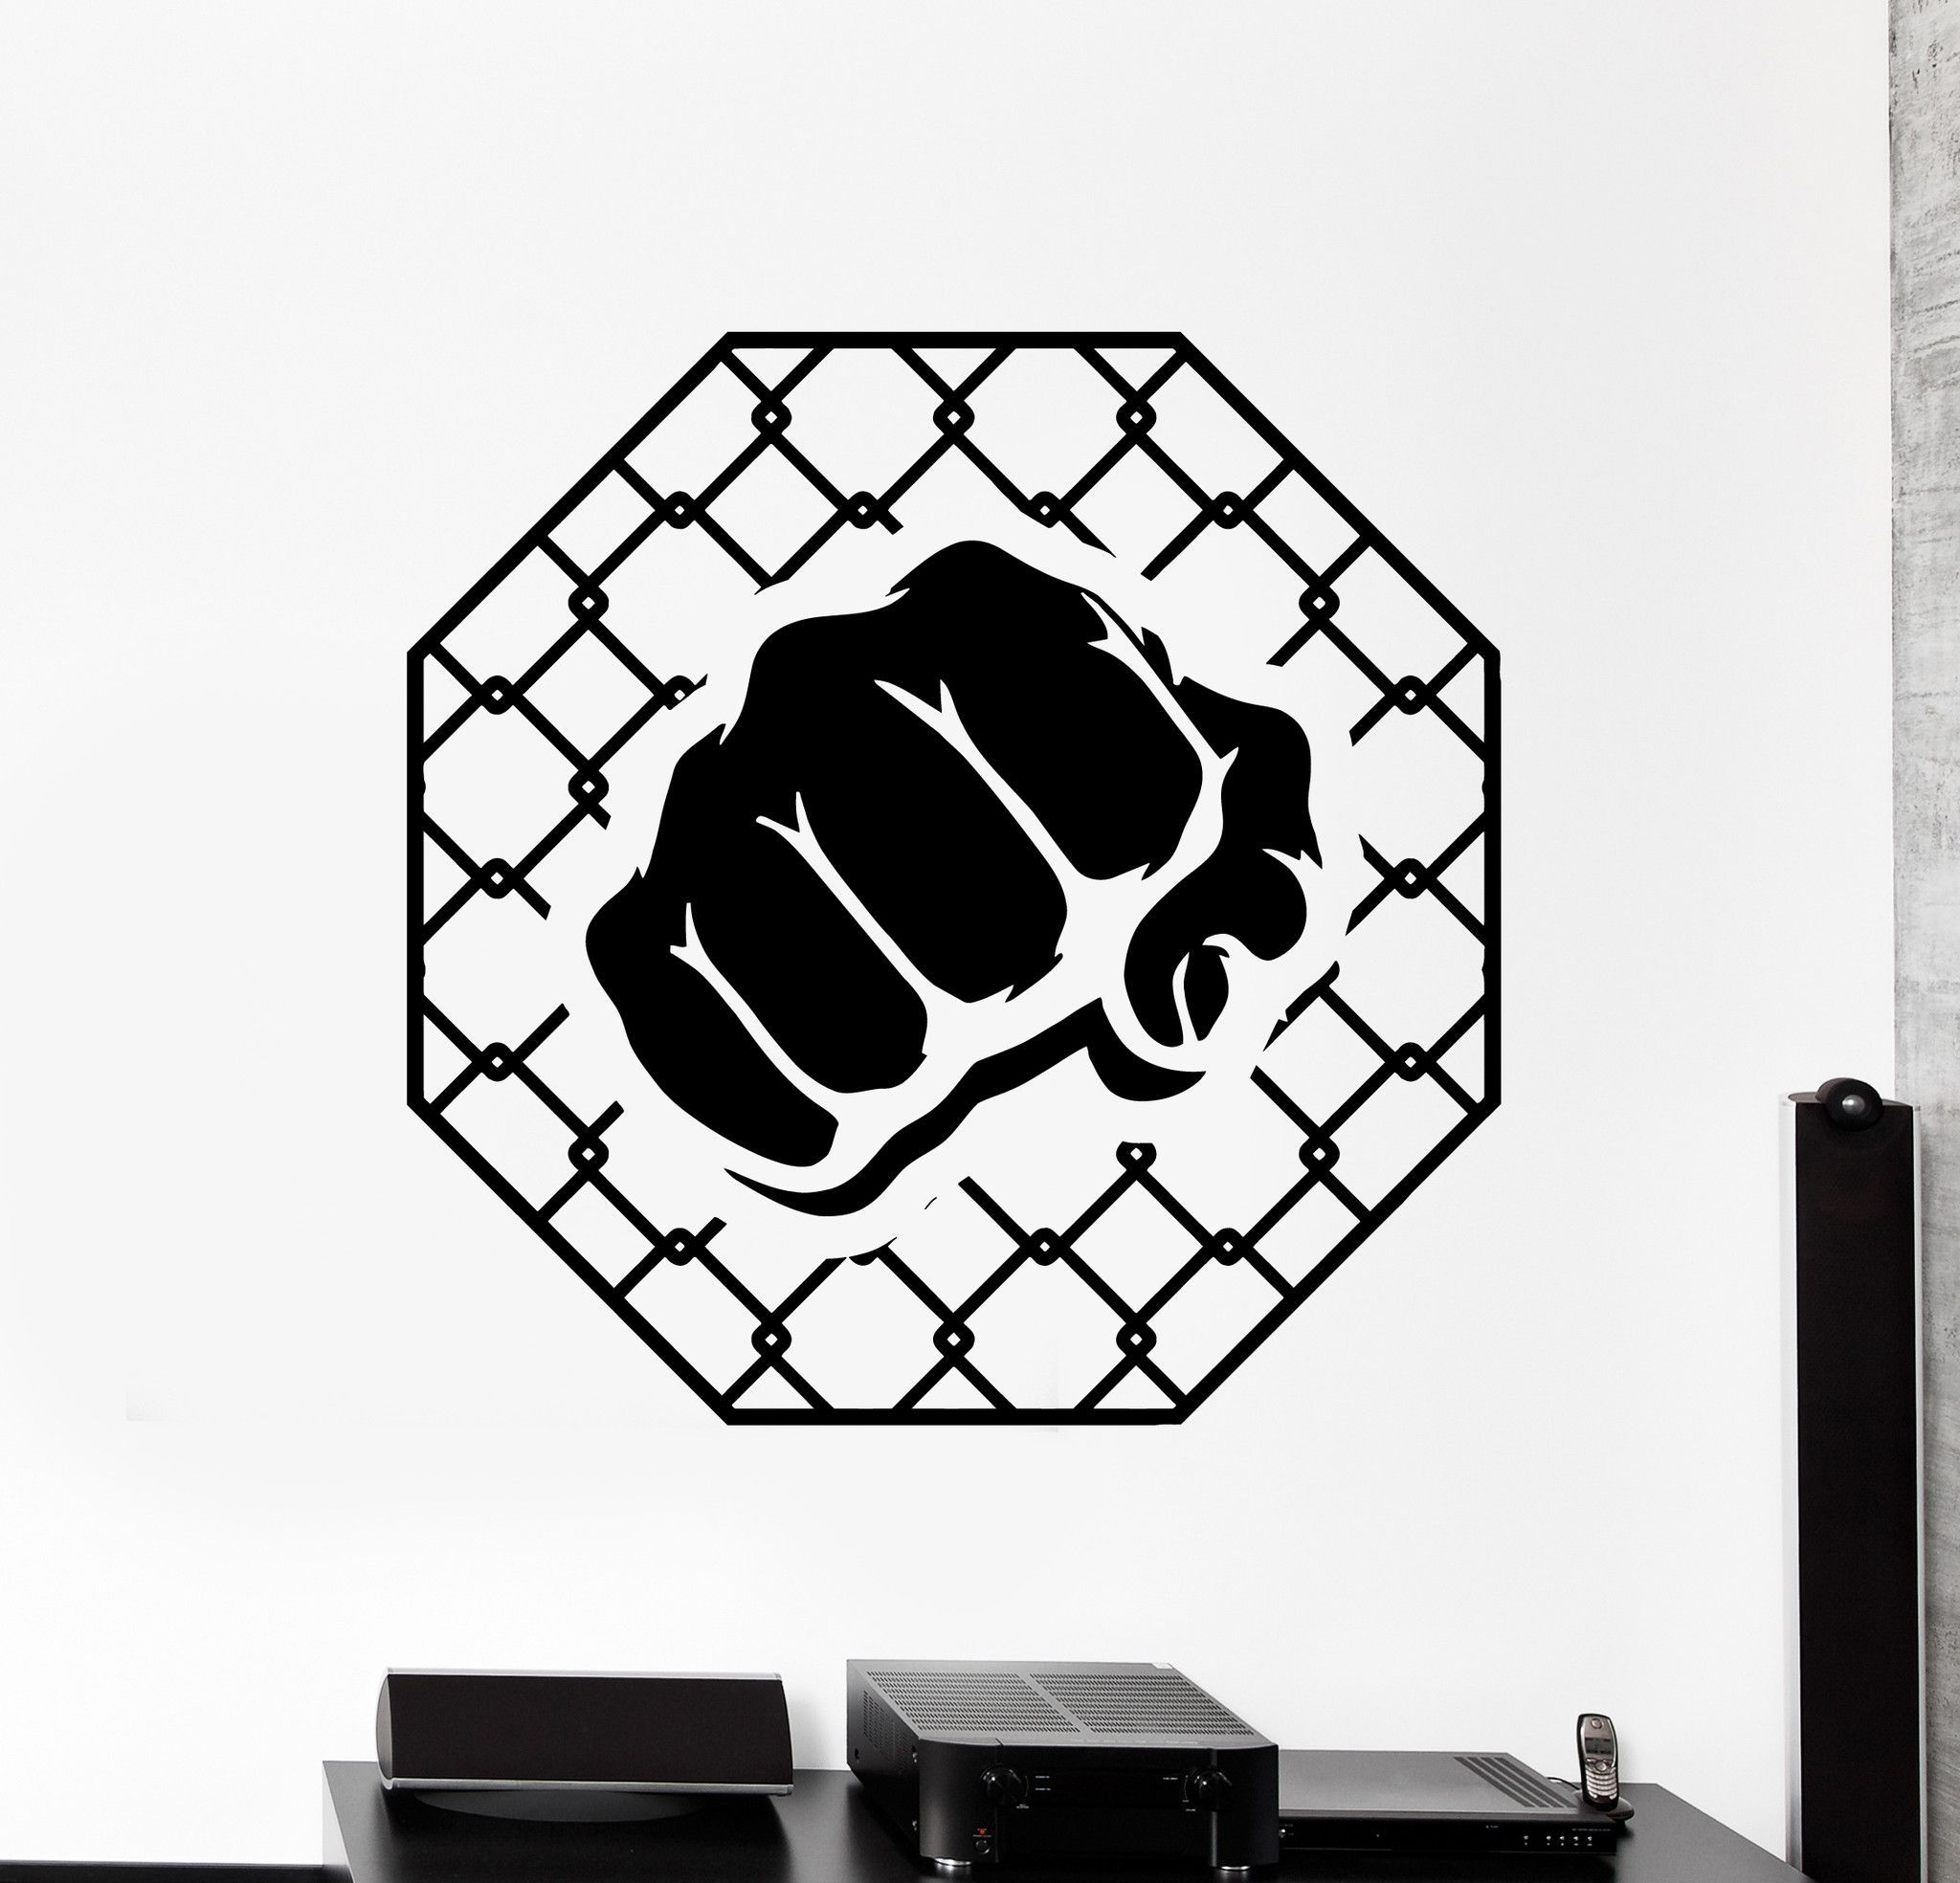 Vinyl Wall Decal Mma Cage Martial Arts Fight Fighters Stickers Murals Unique Gift Ig4778 Cage Tattoos Martial Arts Vinyl Wall Decals [ 1968 x 2048 Pixel ]